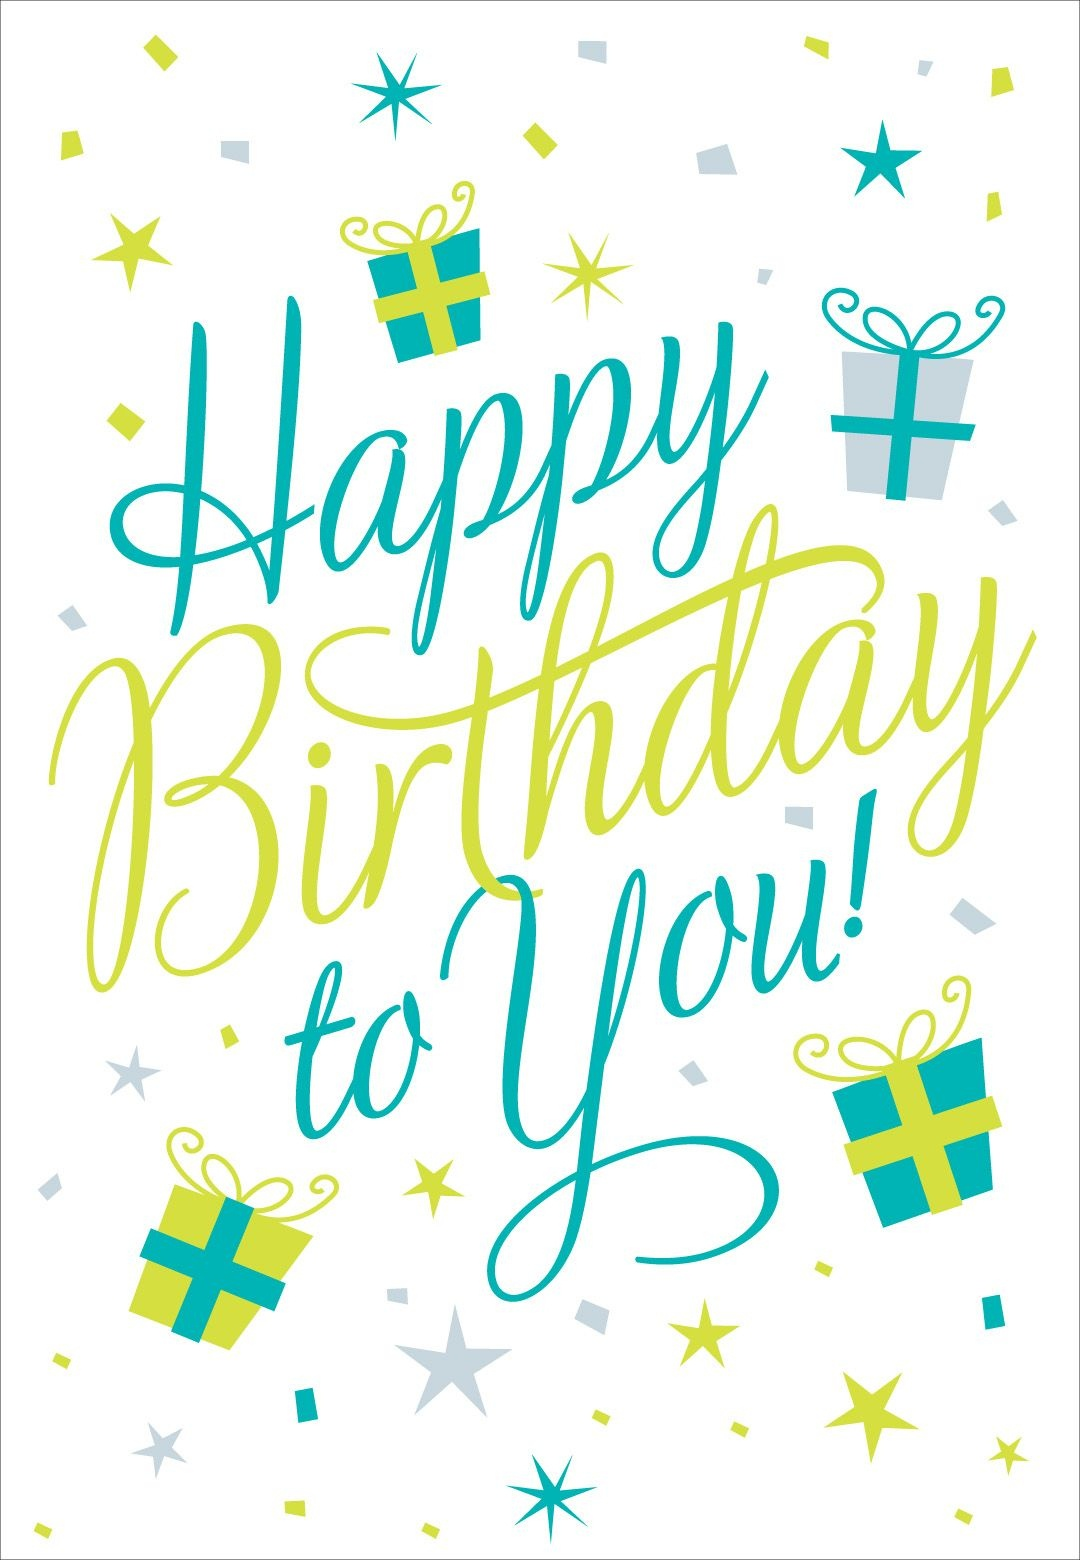 Happy Birthday Janie! This Is Going To Be Your Best Birthday Yet - Free Printable Christian Birthday Greeting Cards